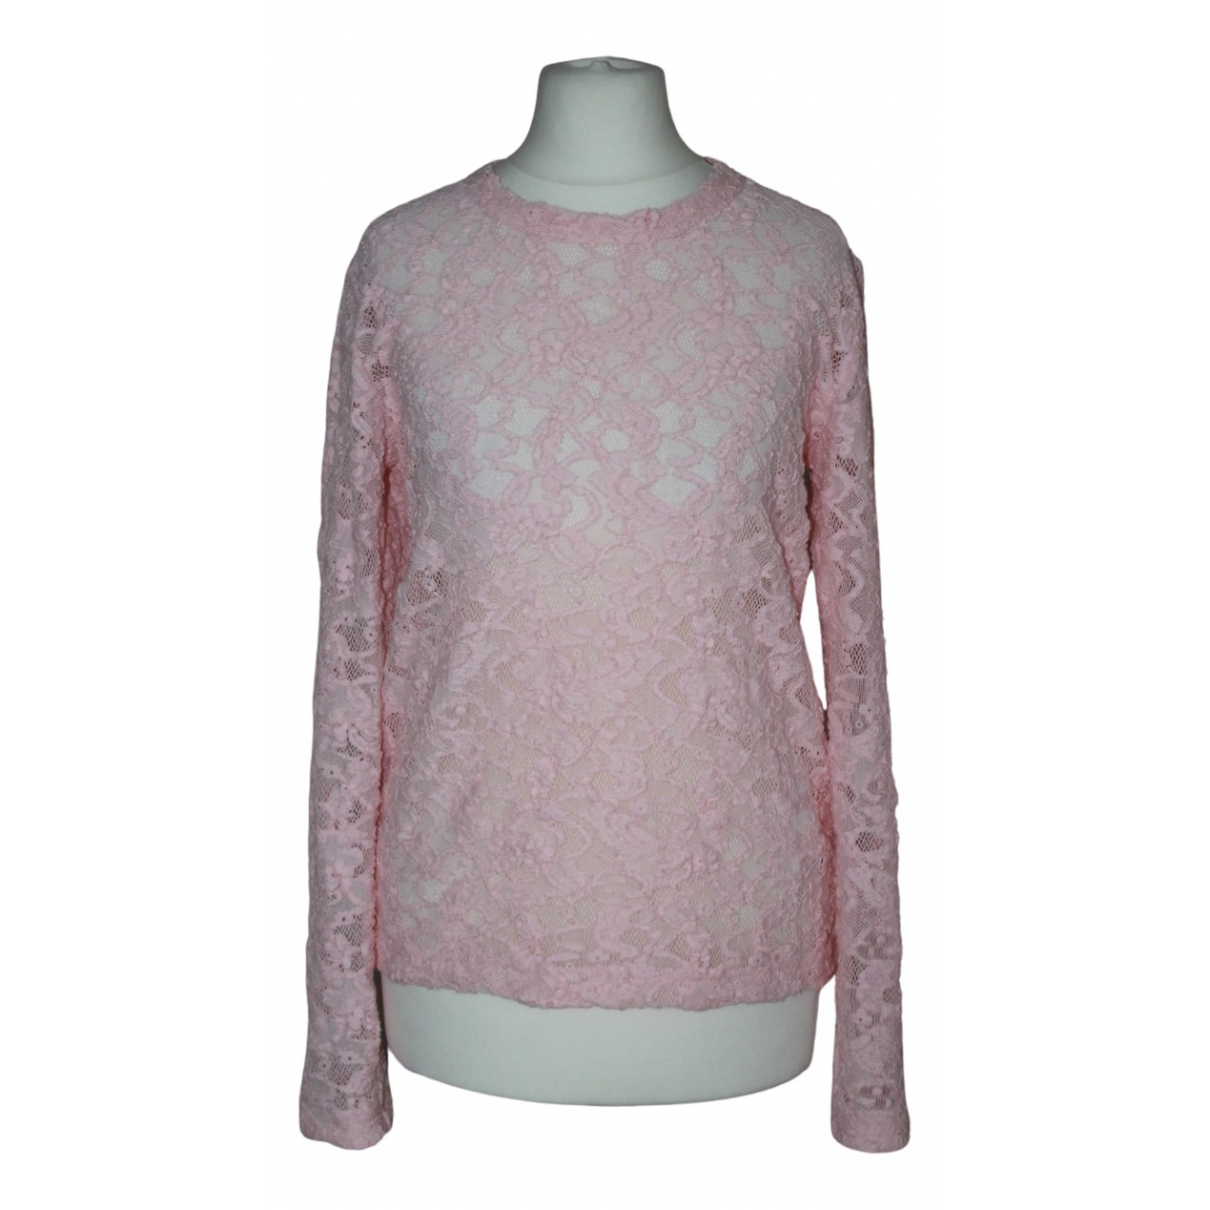 Comme Des Garcons \N Pink Lace  top for Women S International